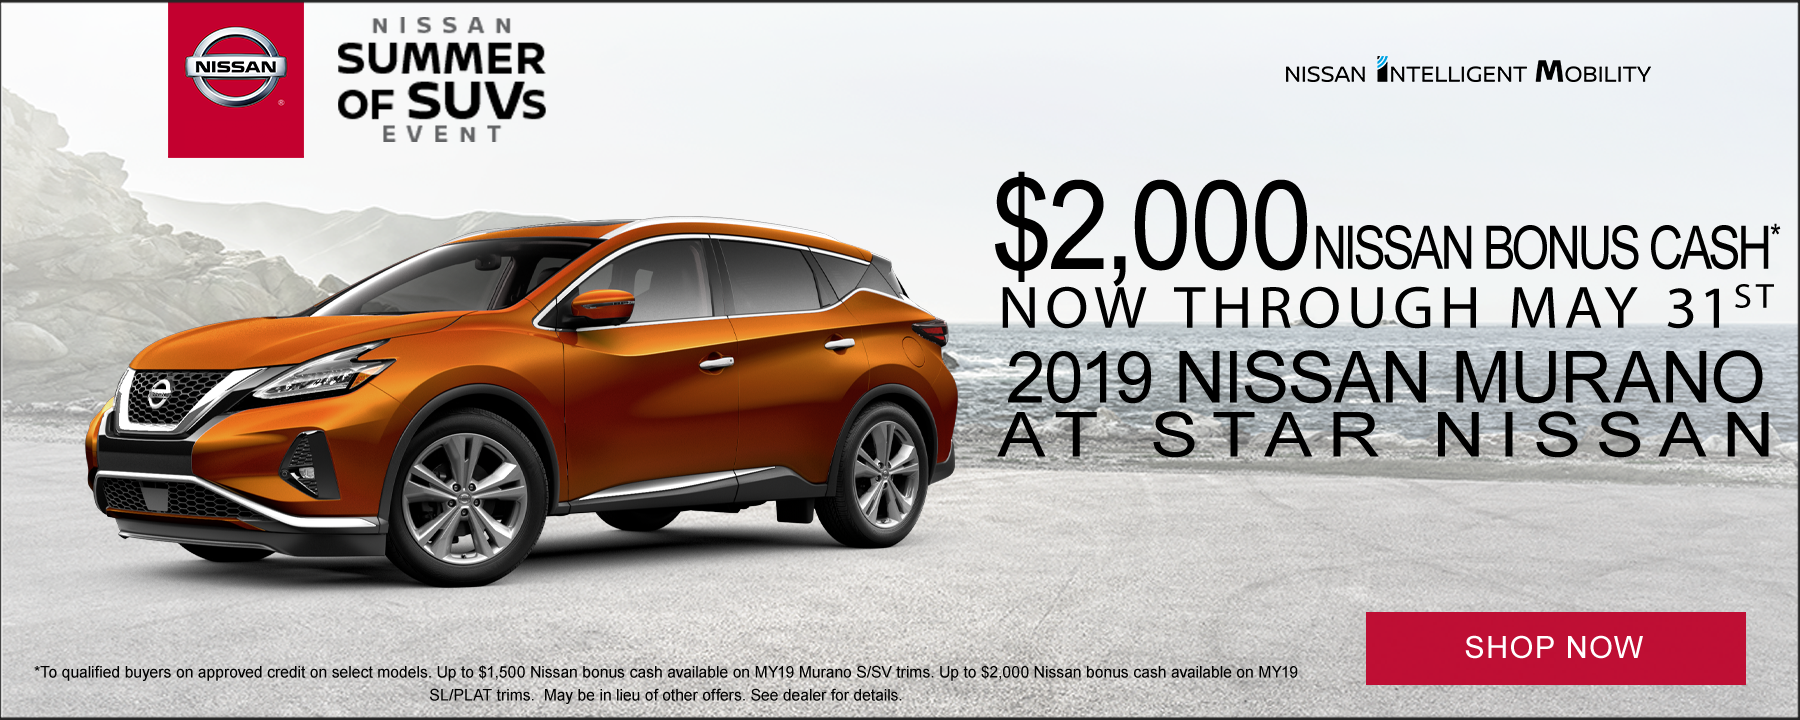 Up to $2,000 Bonus Cash available on 2019 Nissan Murano at Star Nissan!